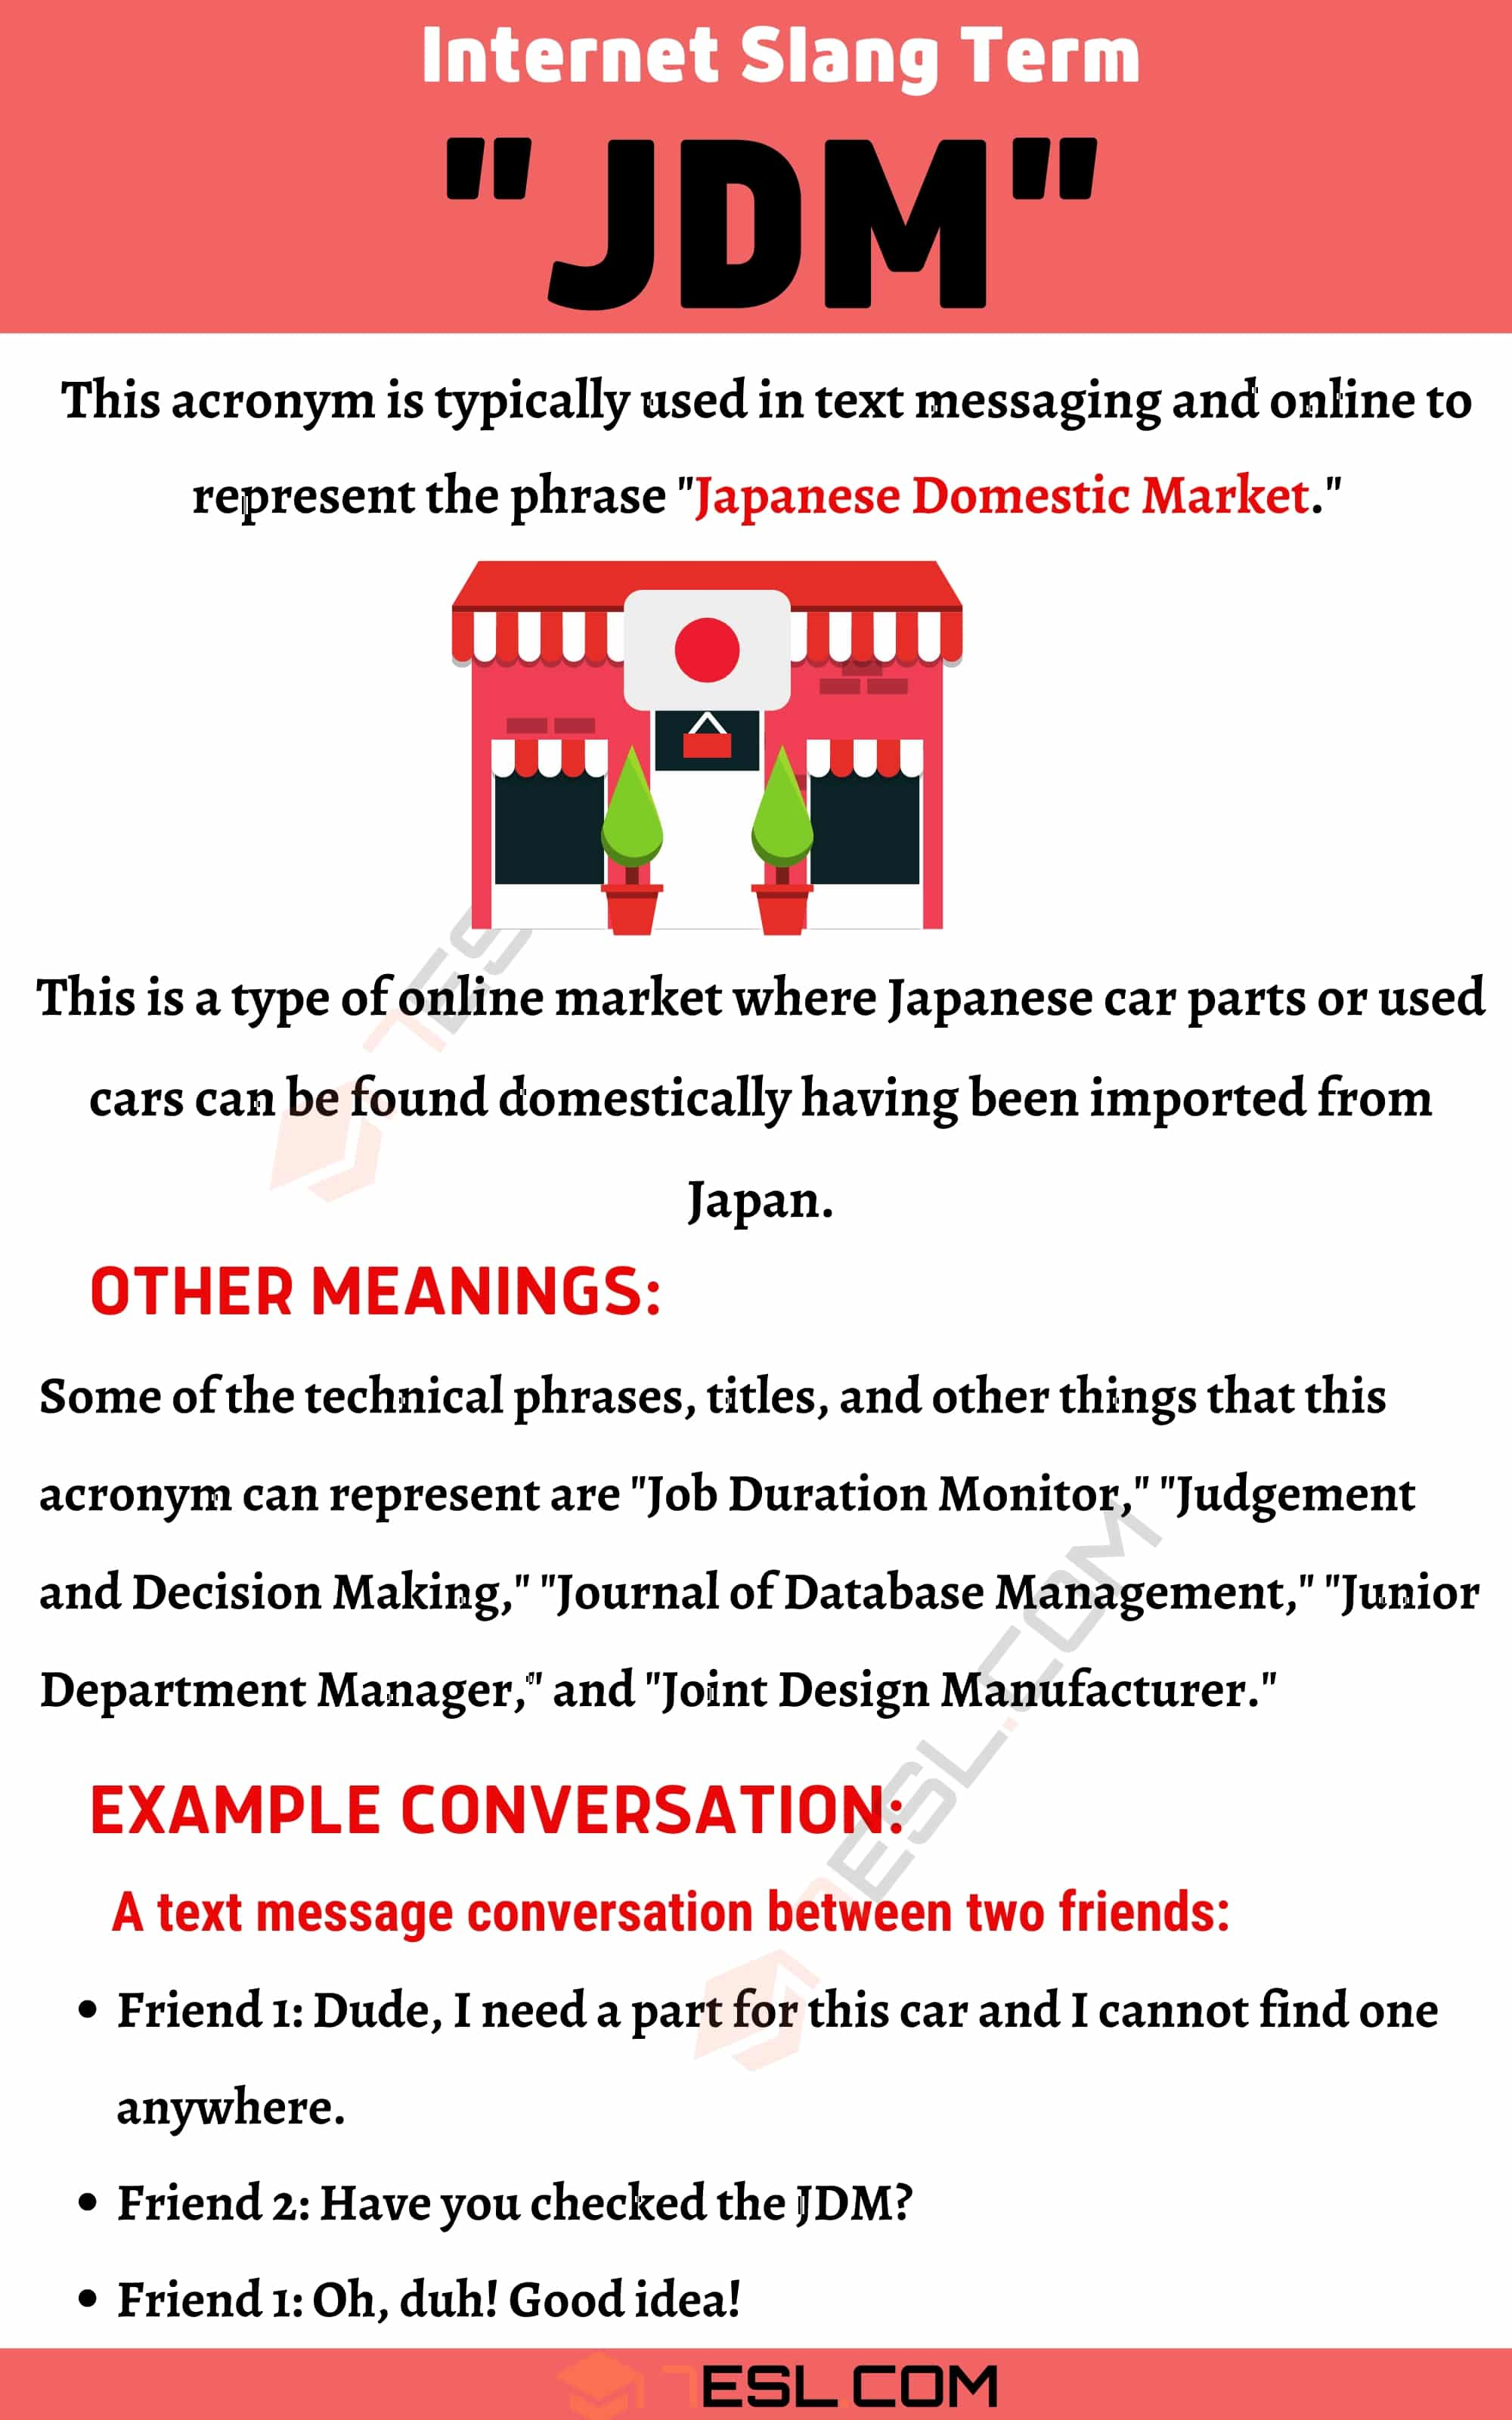 """JDM Meaning: Examples and Definition of the Acronym """"JDM"""""""